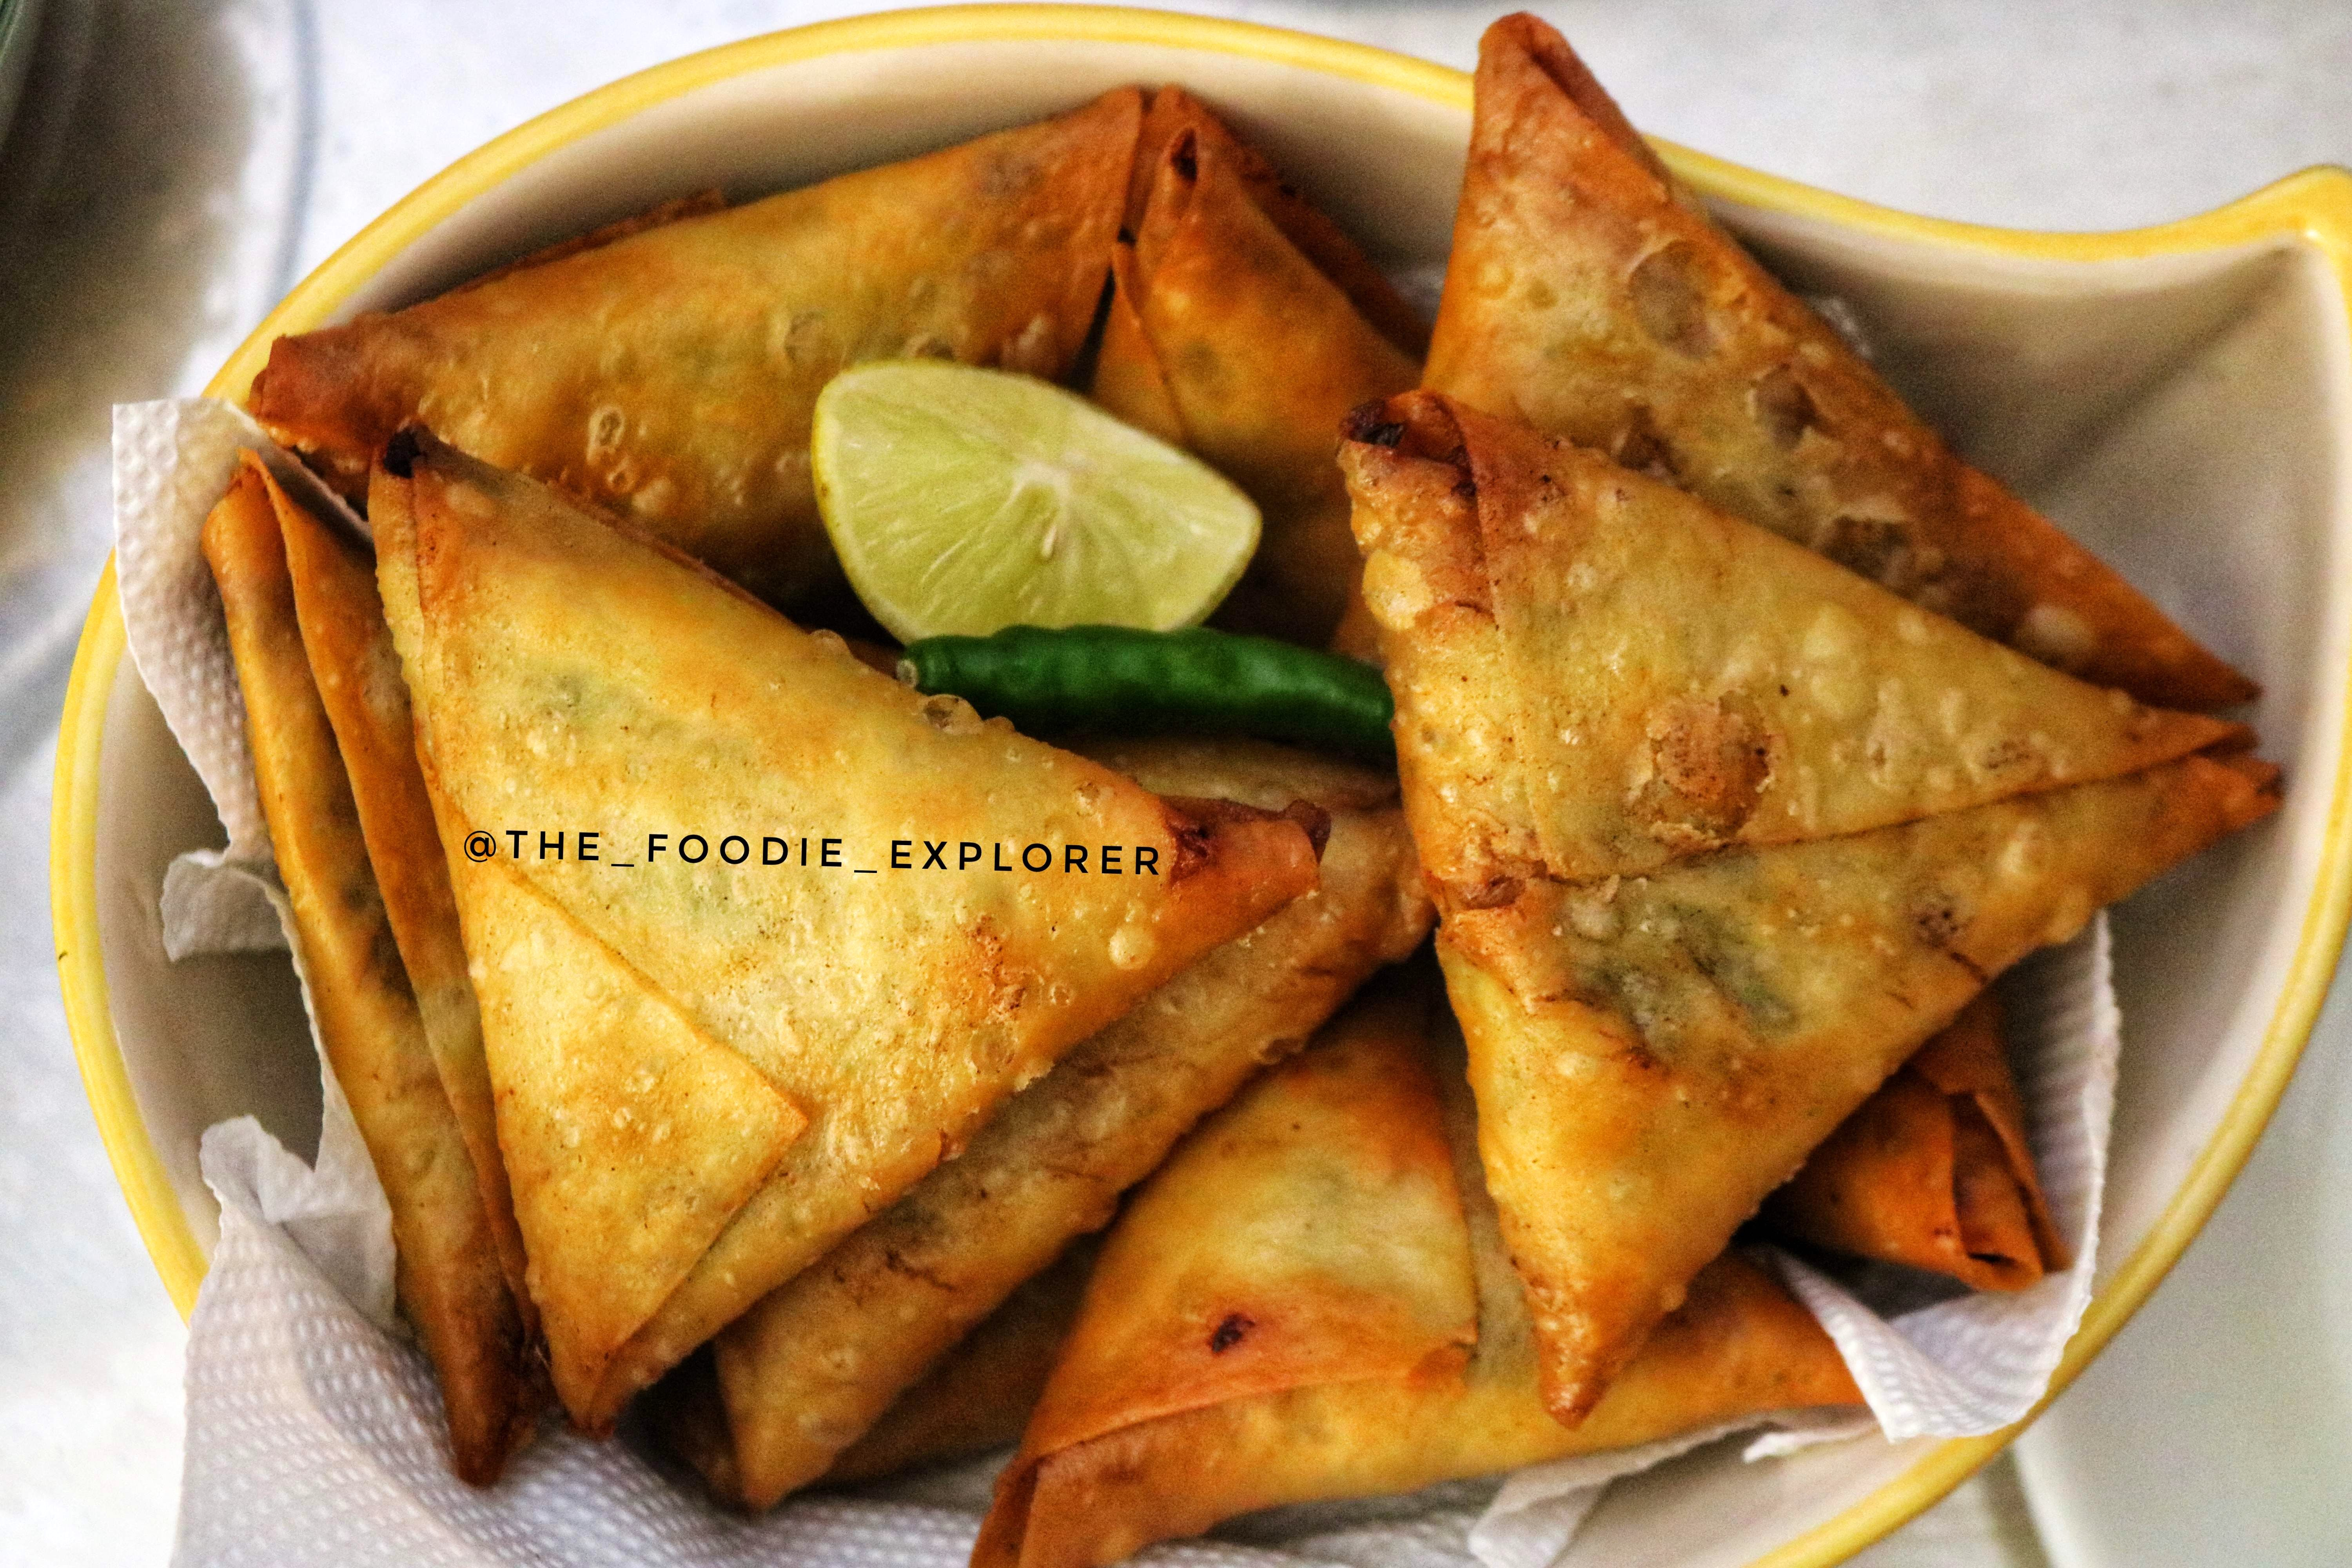 Dish,Food,Cuisine,Fried food,Ingredient,Produce,Baked goods,Pastry,Samosa,Recipe